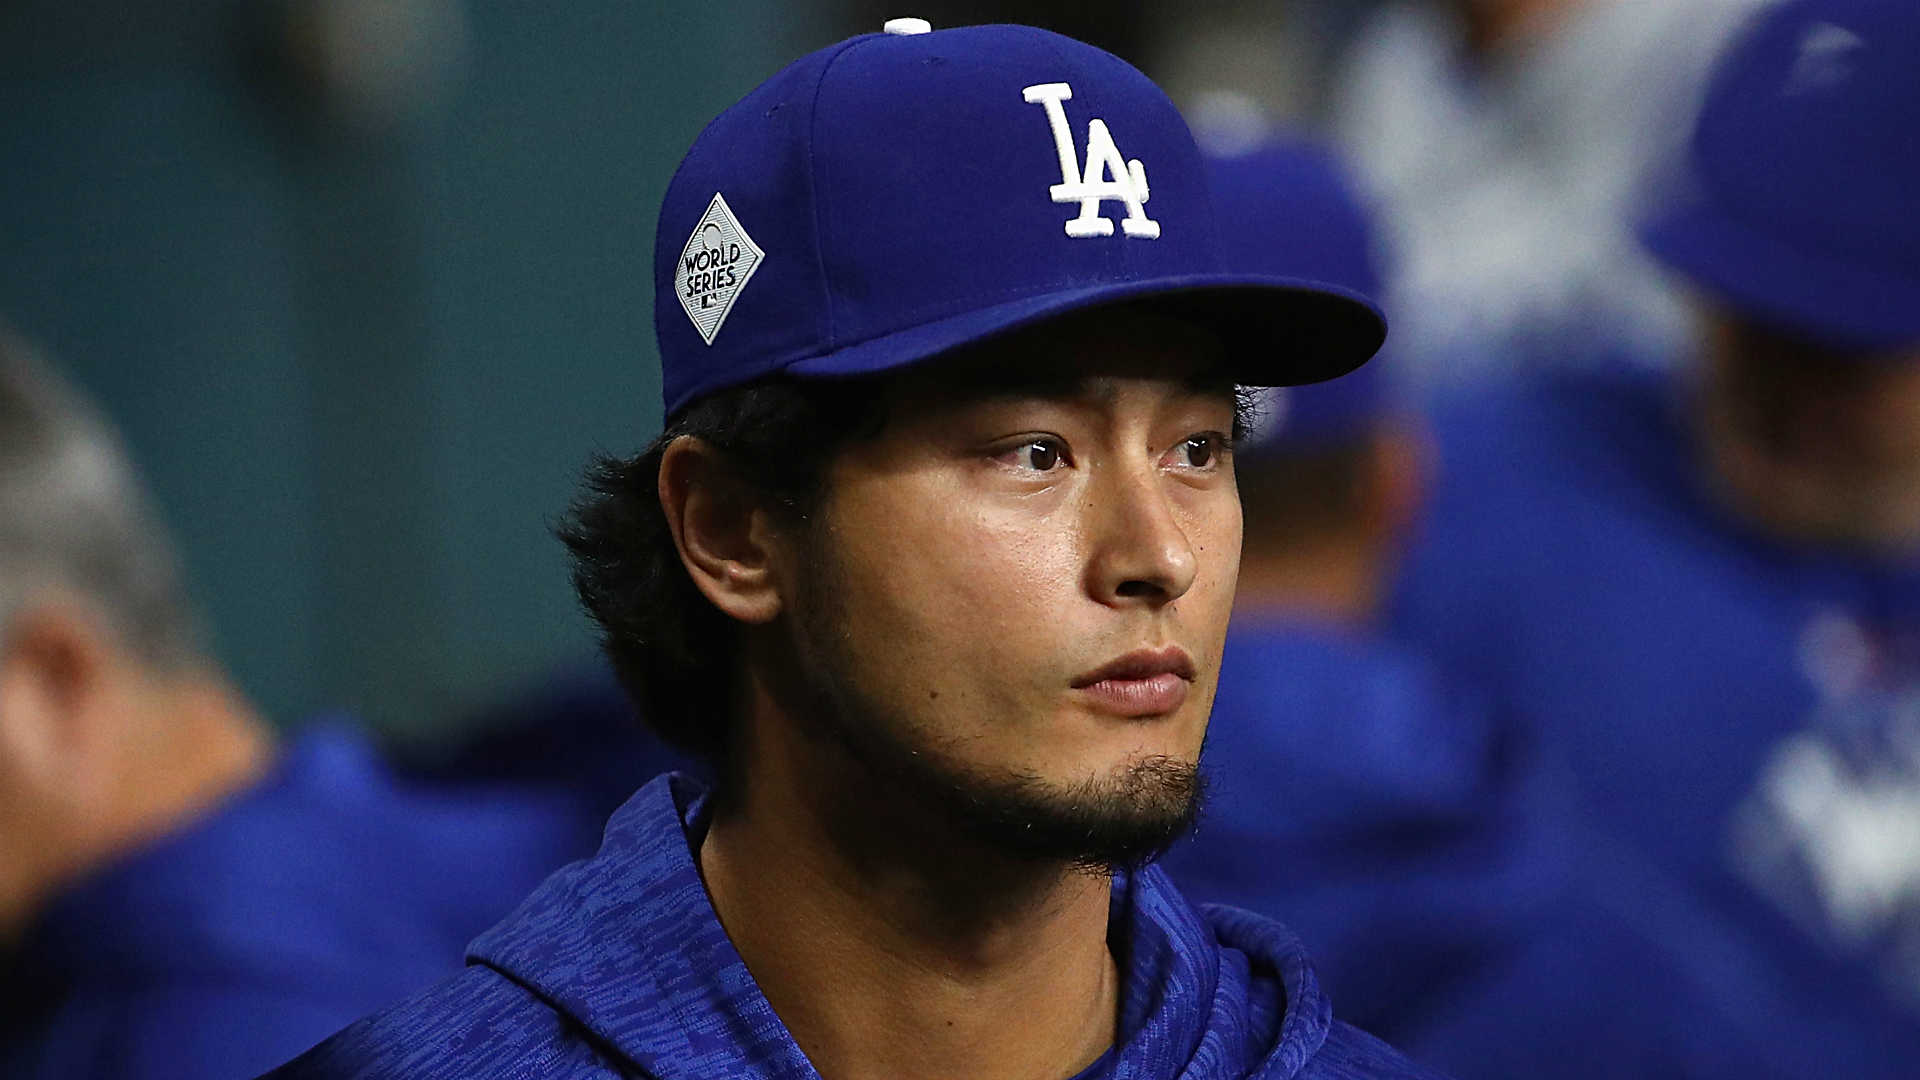 Chicago Cubs sign top free agent Yu Darvish